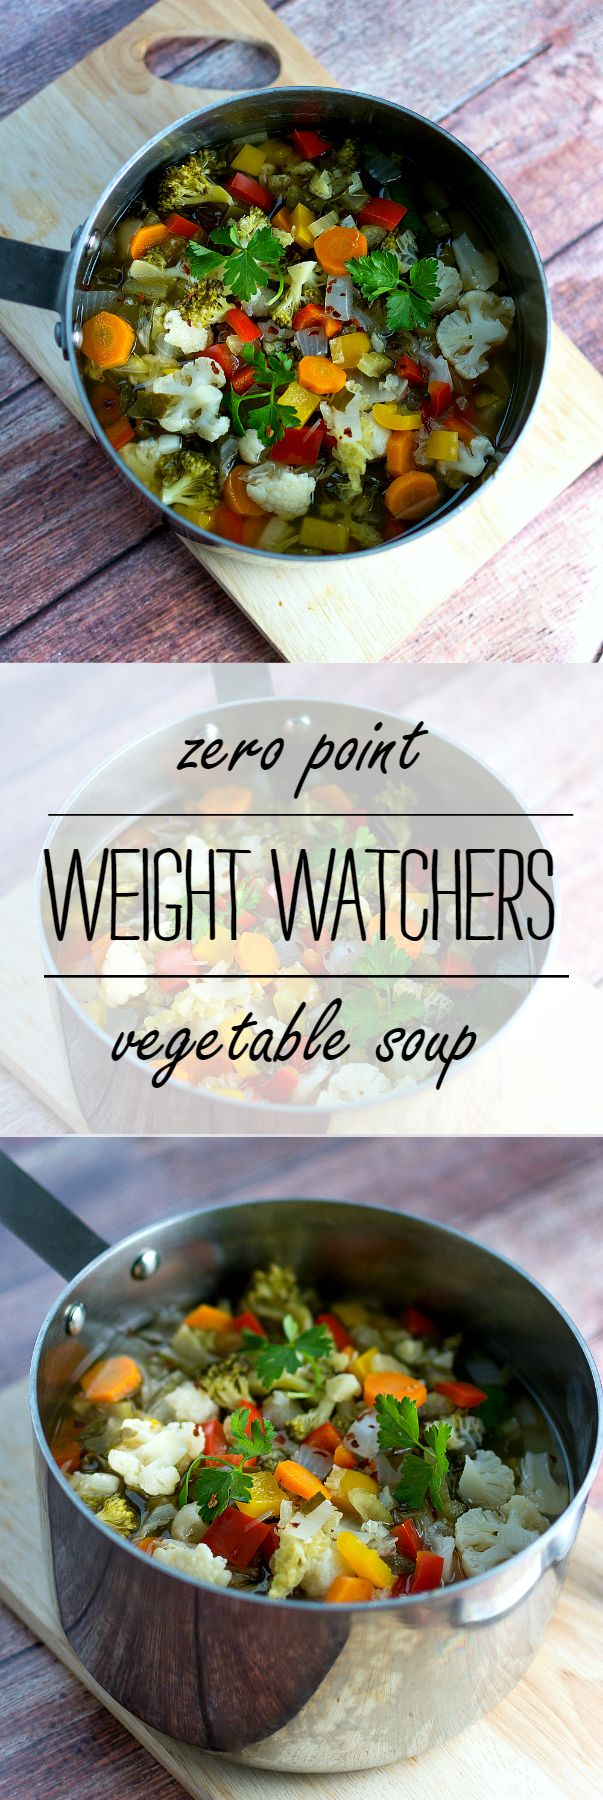 Weight Watchers Soup Recipe - Zero Point Recipe Ideas for Weight Watchers Lunch & Dinner - It All Started With Paint